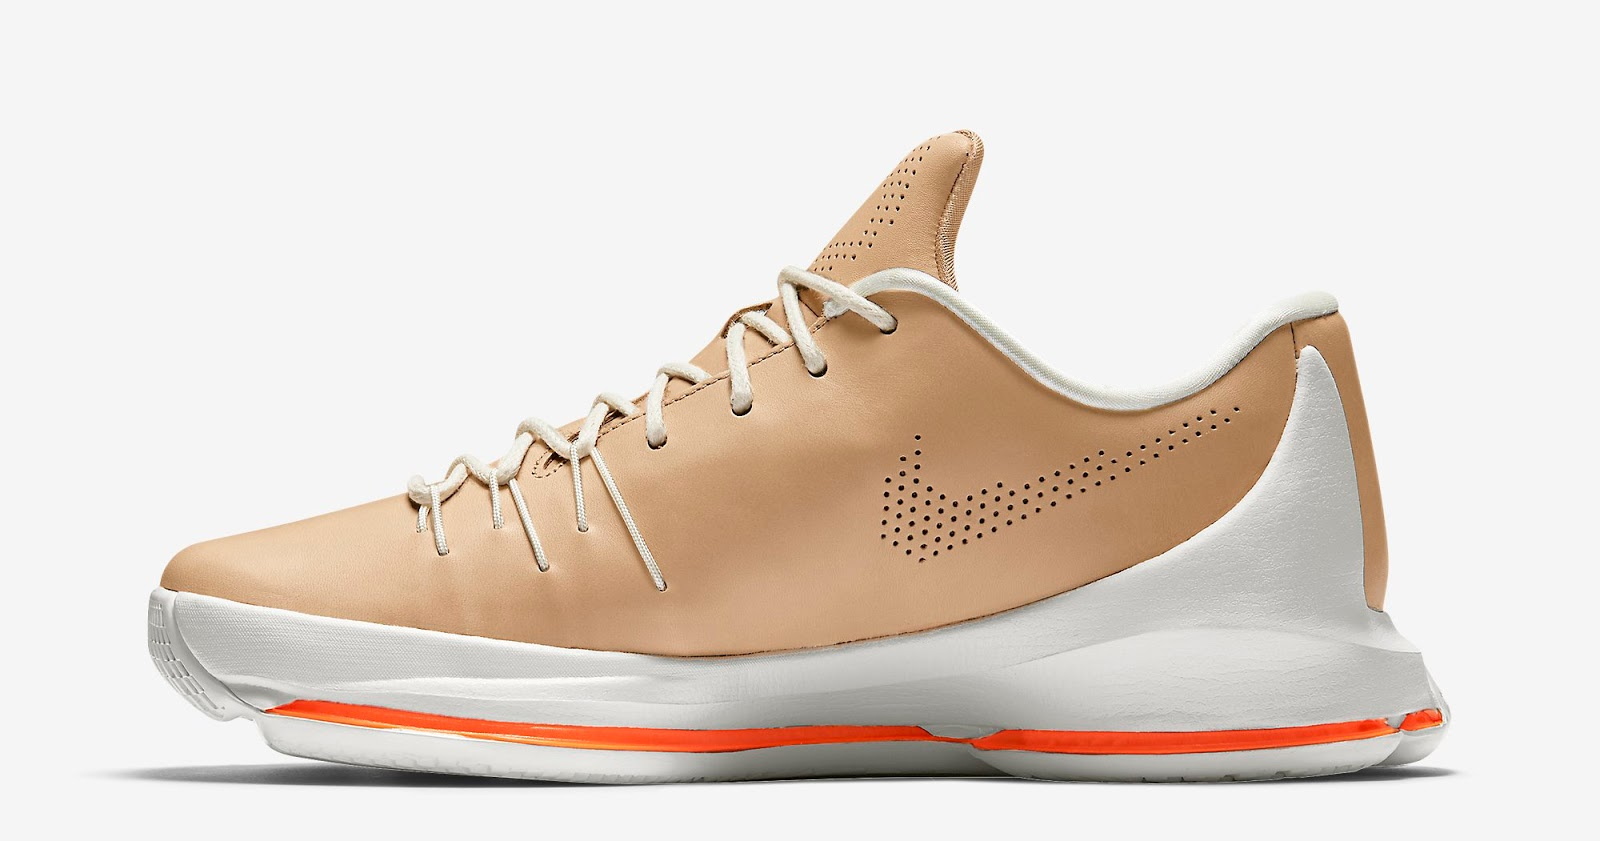 6a0f6e67356f ajordanxi Your  1 Source For Sneaker Release Dates  Nike KD 8 EXT Vachetta  Tan Sail-Total Orange Release Reminder